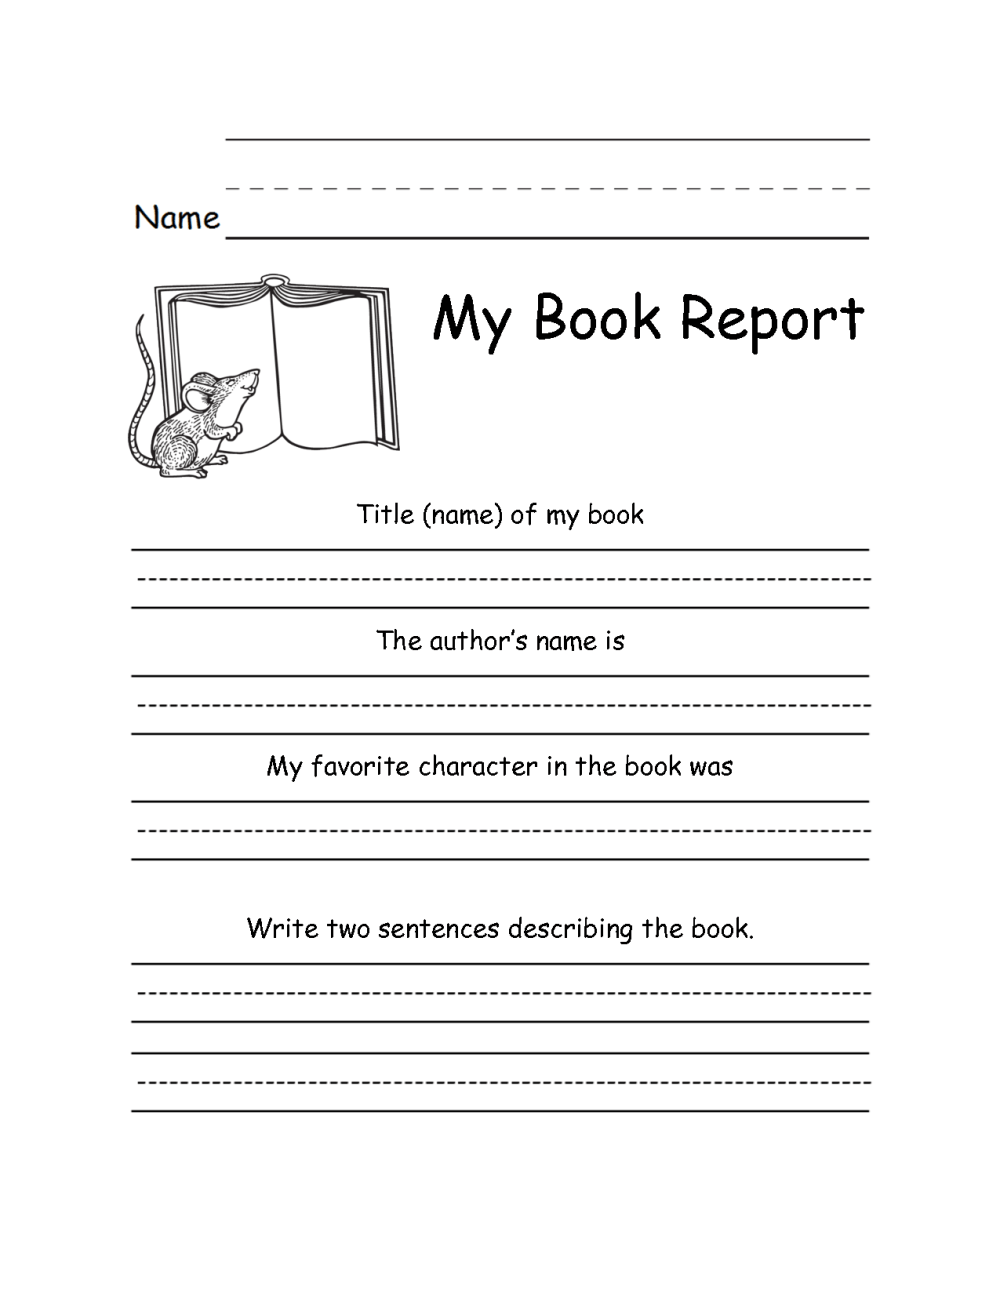 medium resolution of Oreo Writing Worksheet For Book Reading Response   Printable Worksheets and  Activities for Teachers